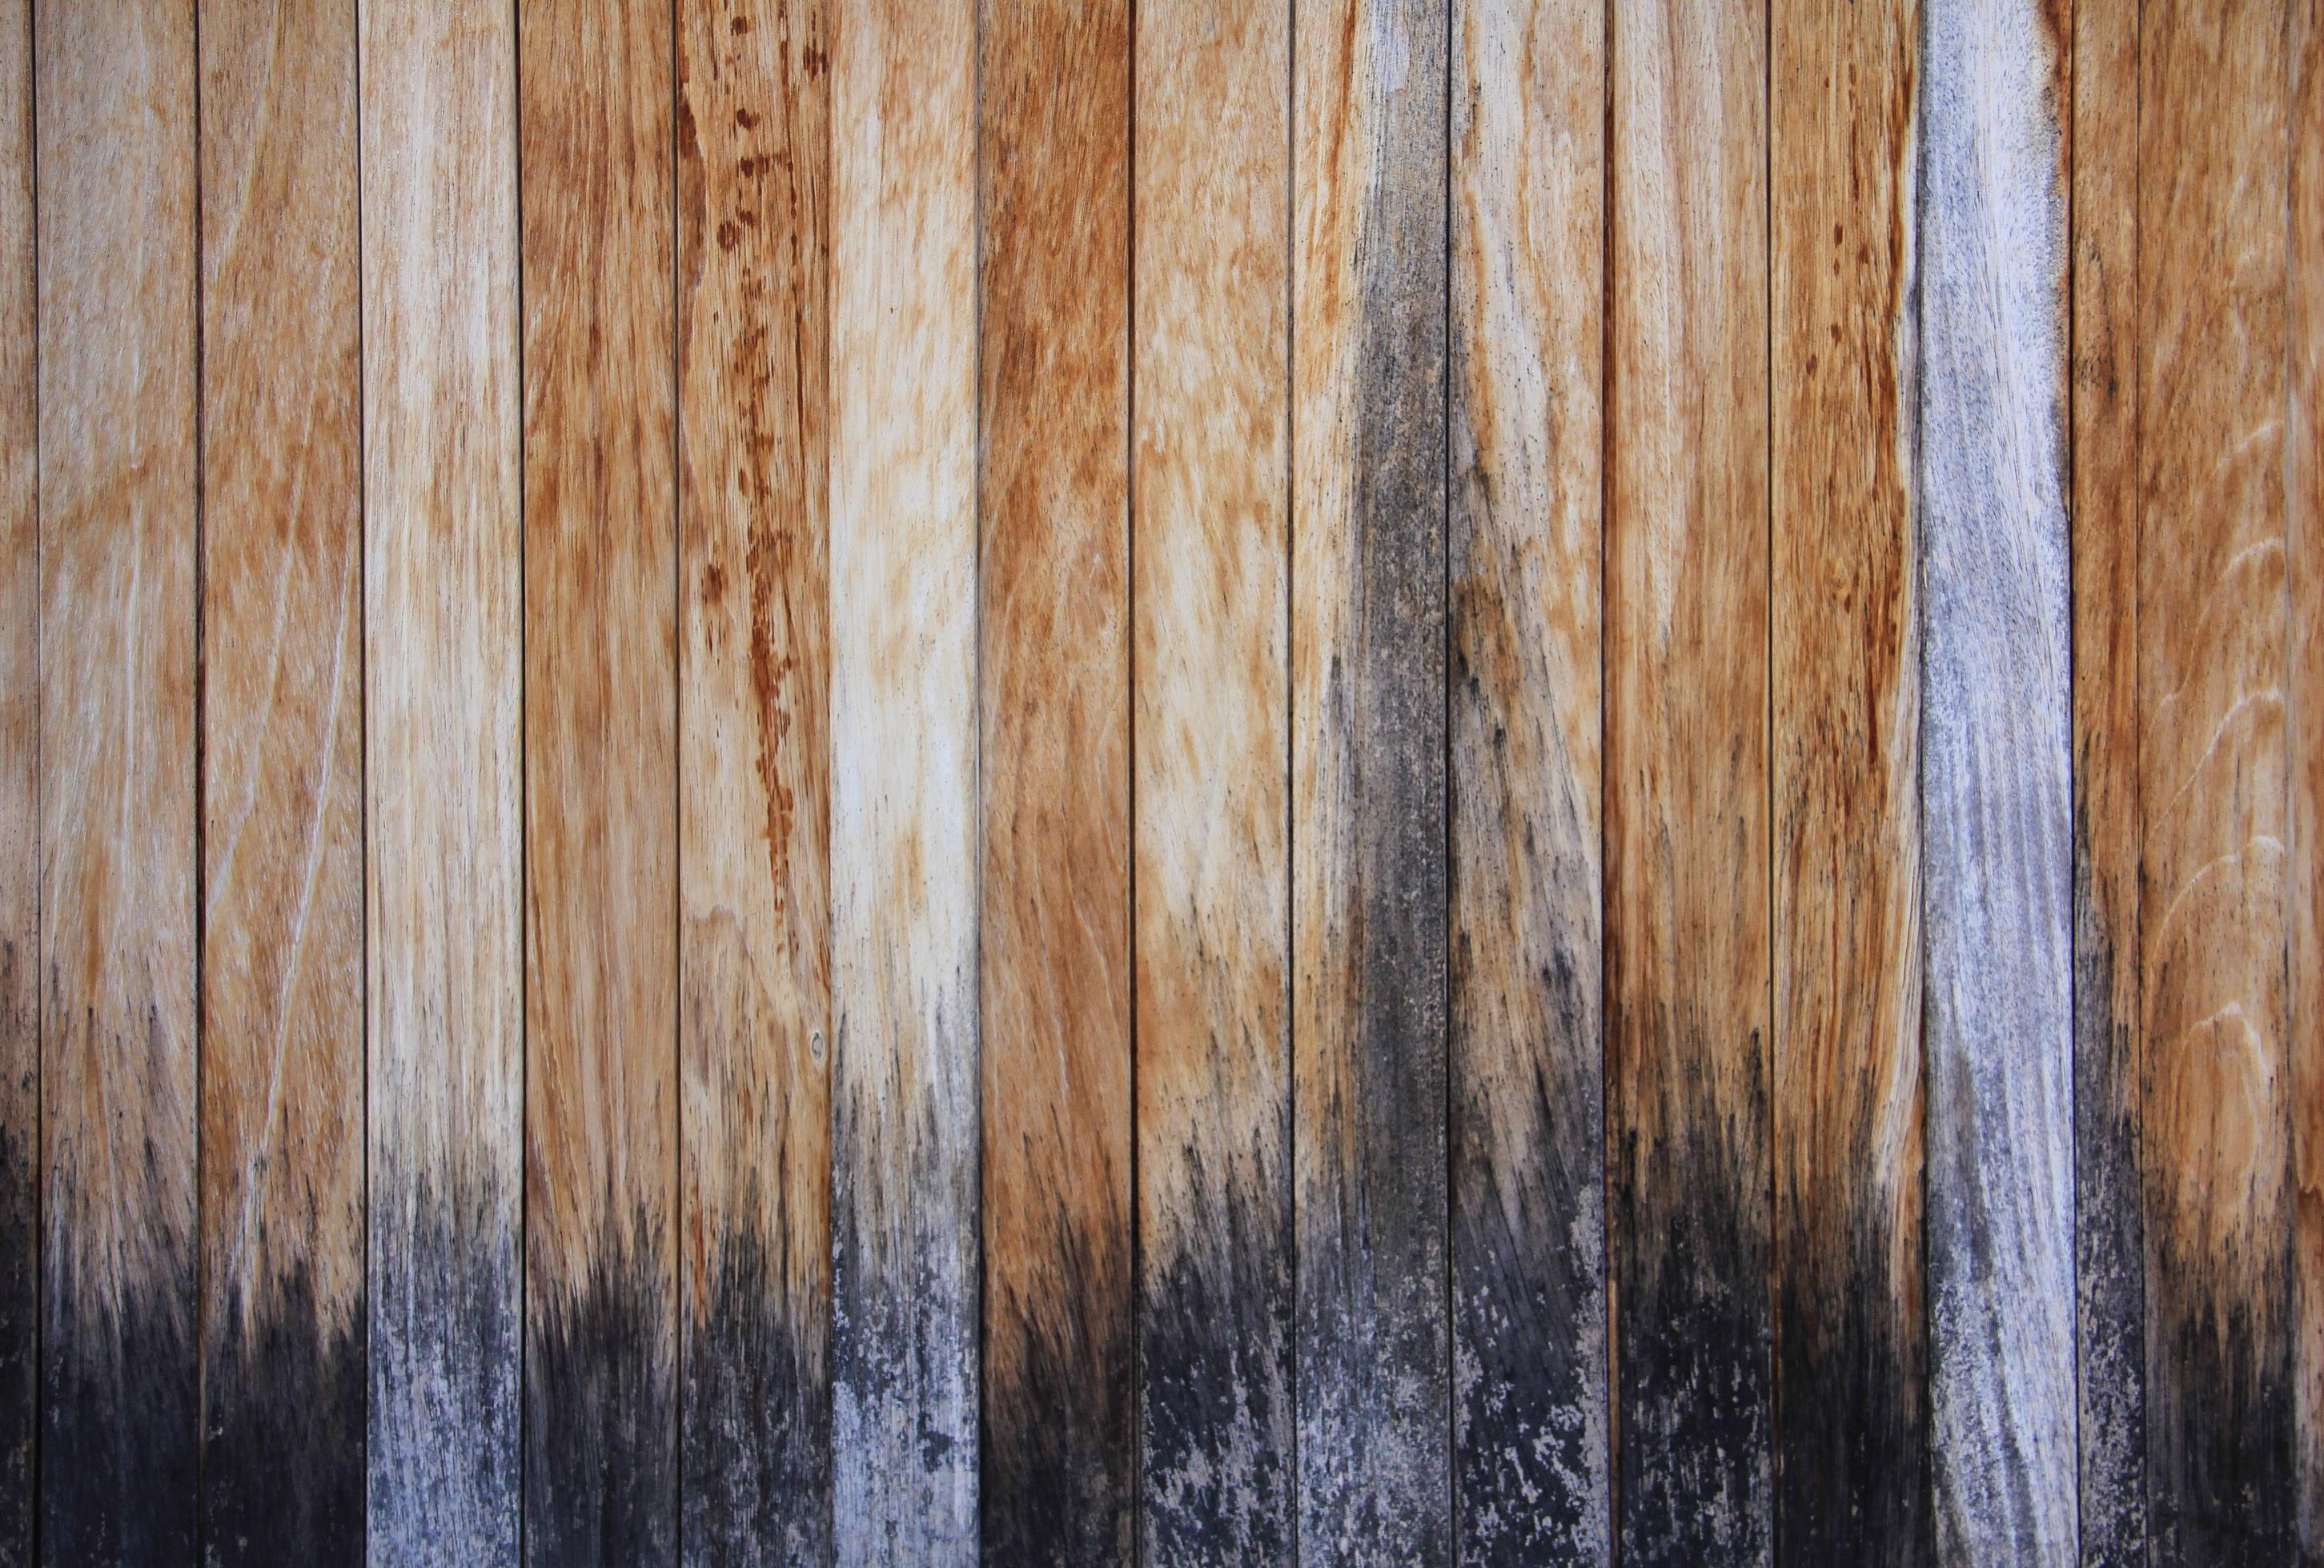 Wood Texture HD Background Wallpaper